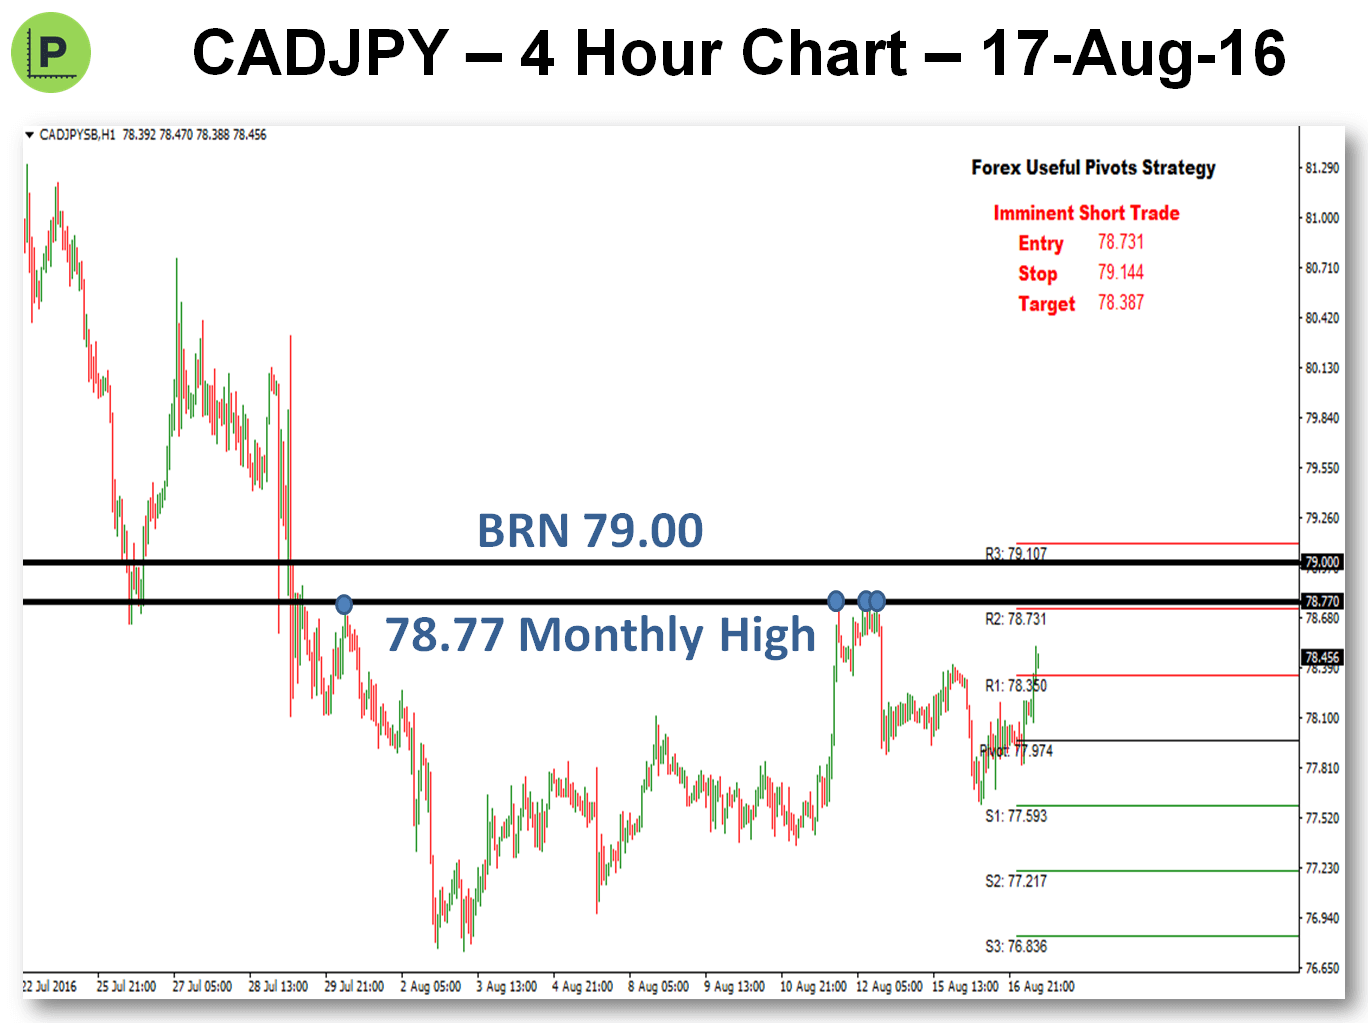 Potential Pivot Trade - 17-Aug-16 CADJPY Chart